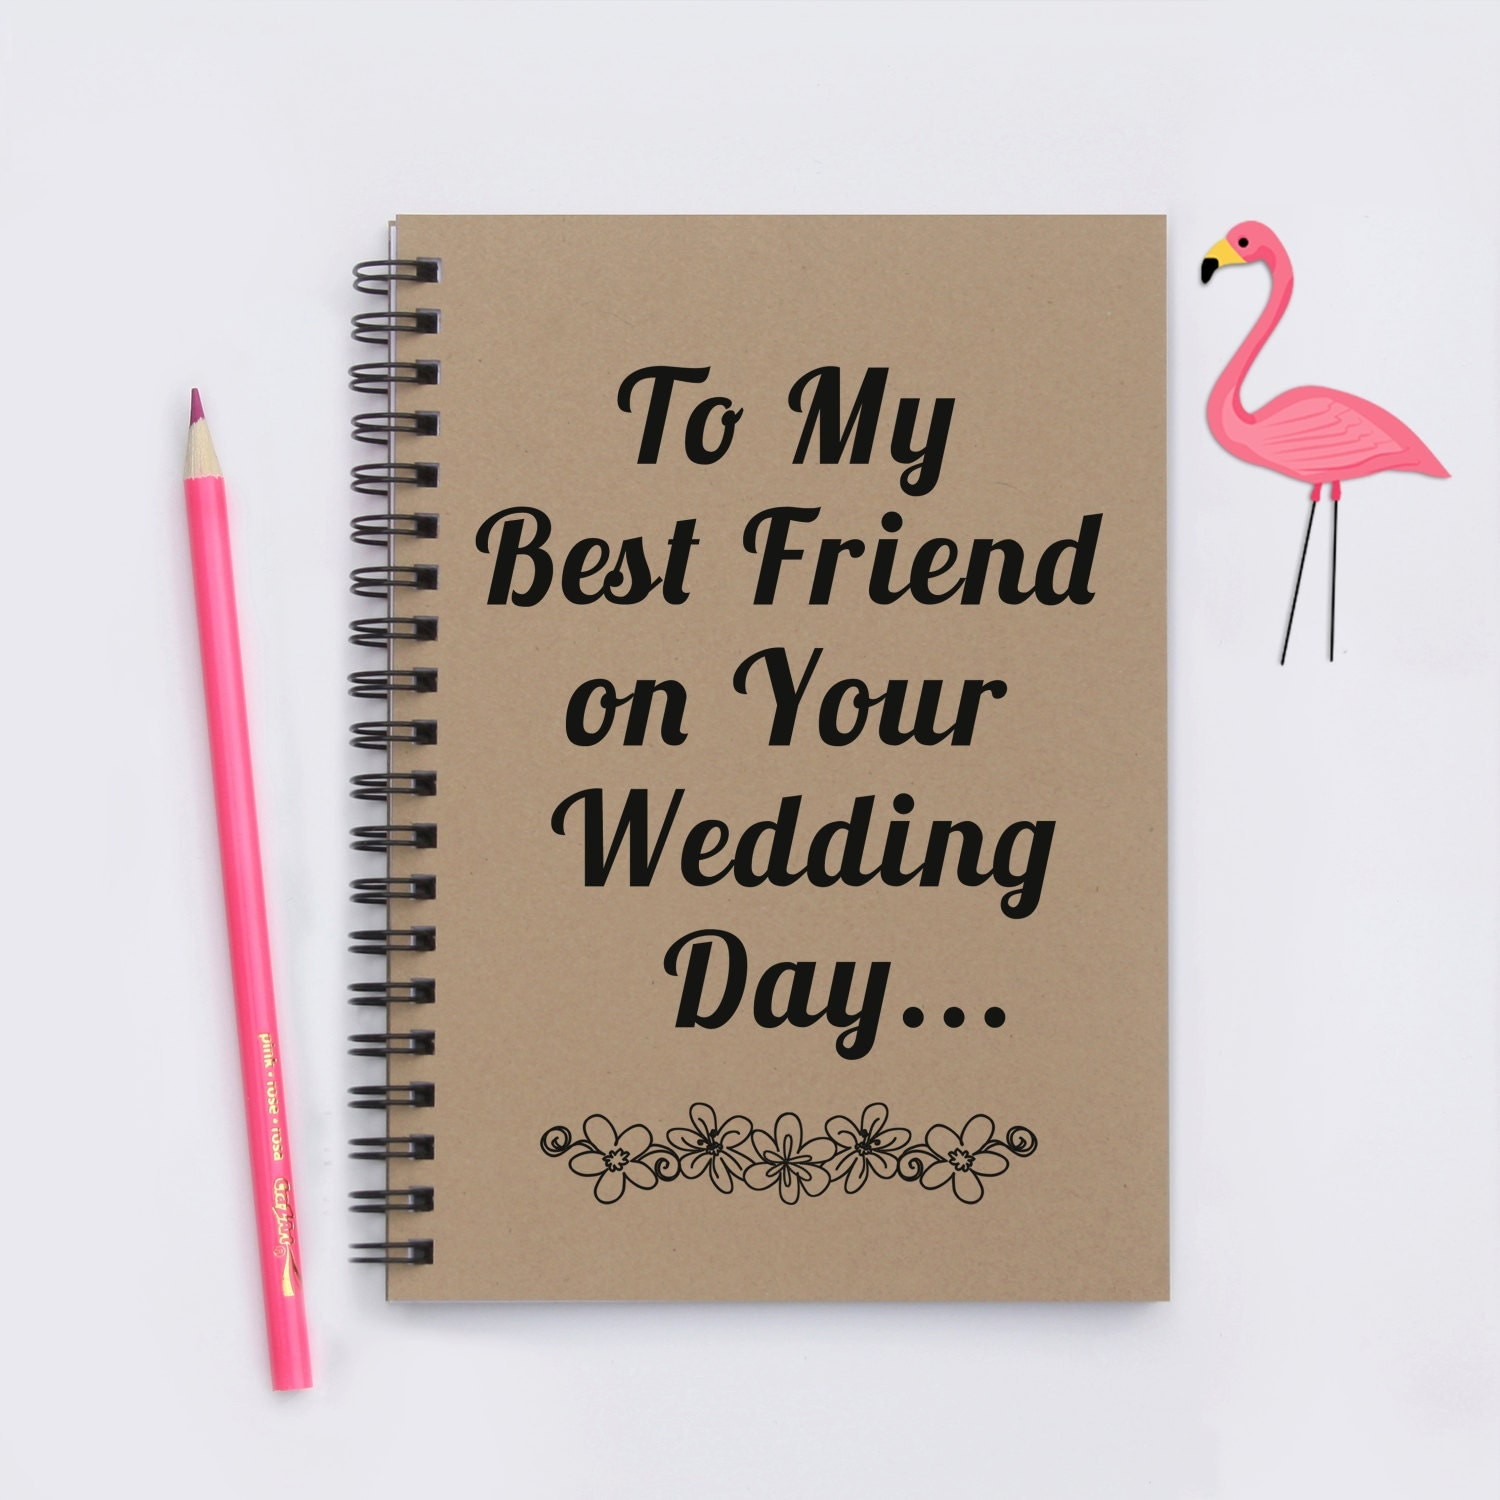 Wedding Gift Ideas For Friends Uk : Best friend wedding gift To My Best Friend on Your Wedding